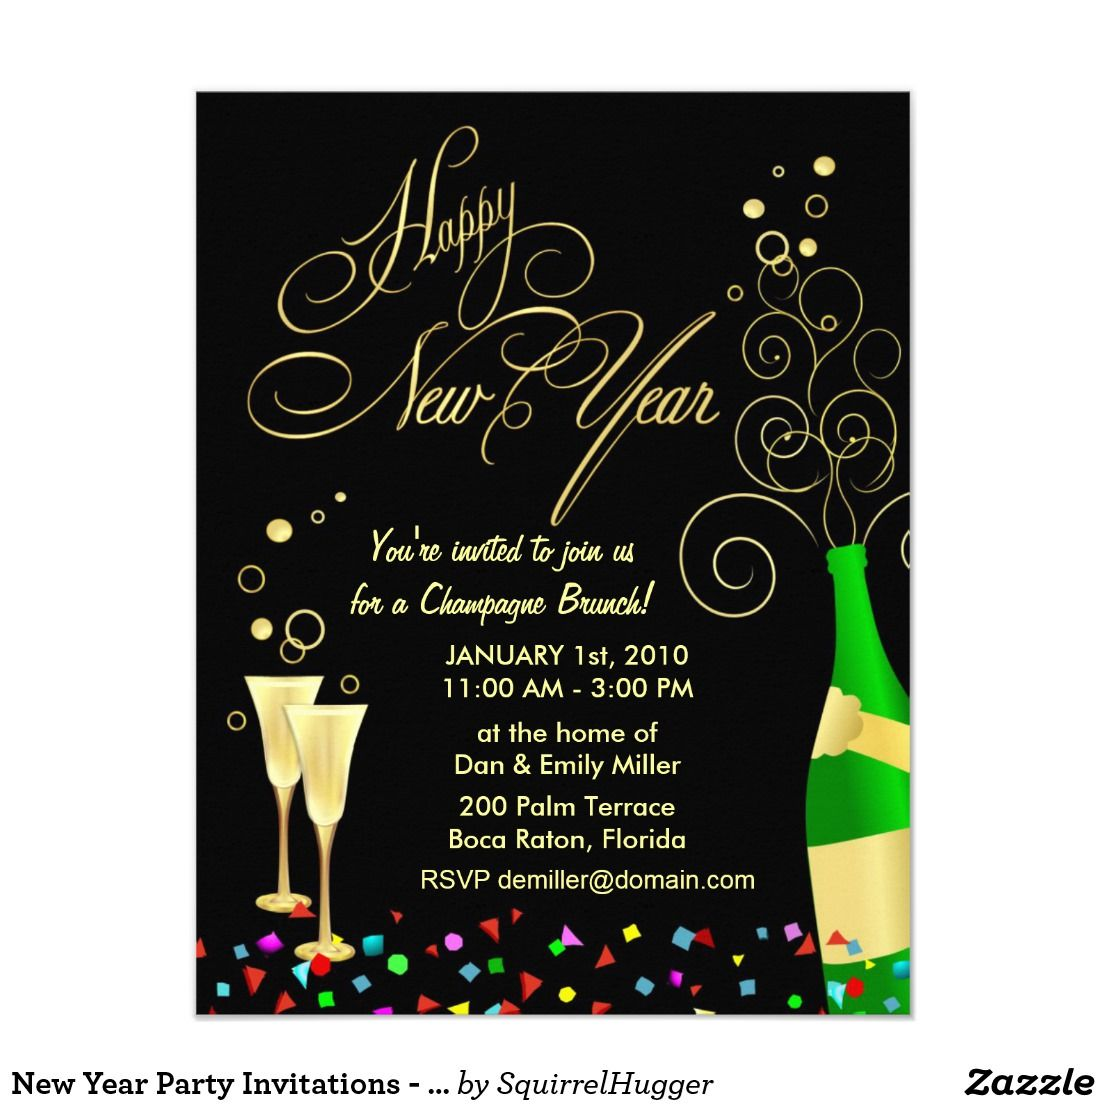 New Year Party Invitations Champagne Brunch Zazzle Com Party Invitations New Years Eve Invitations Champagne Brunch